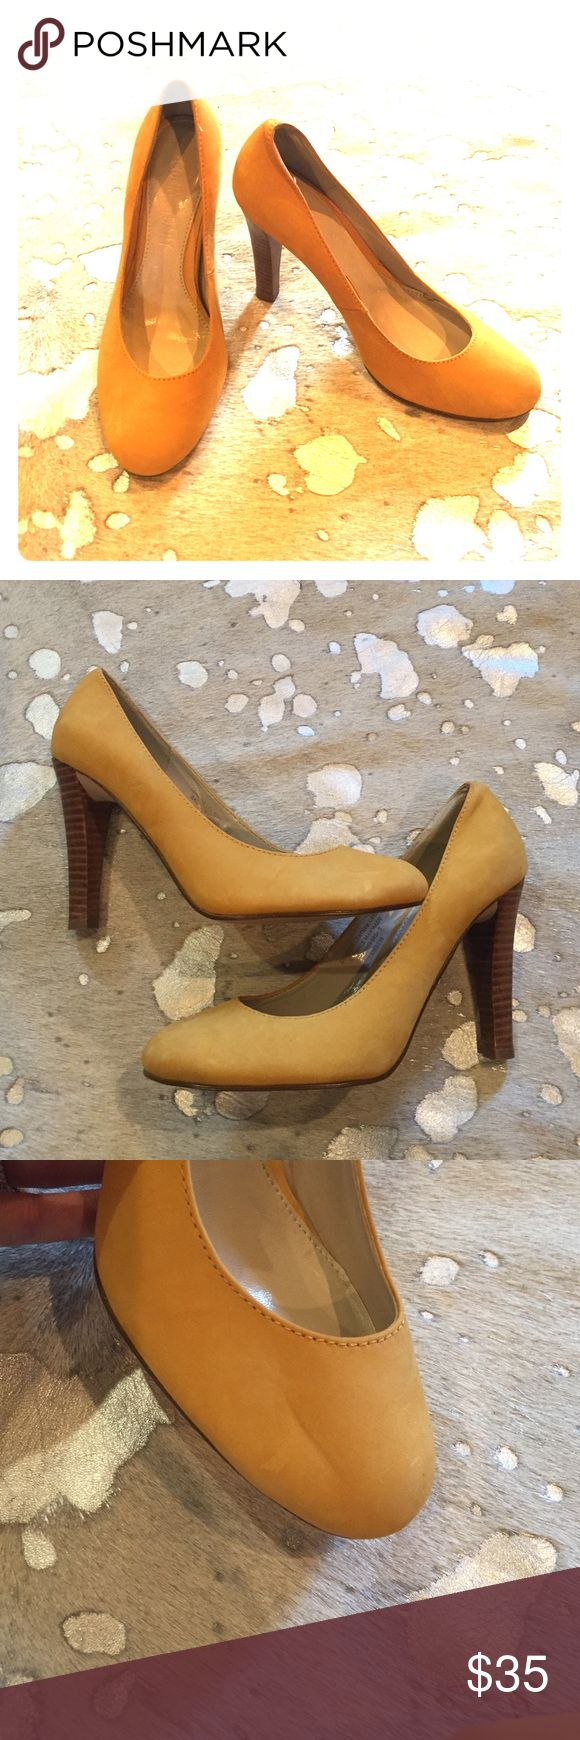 Colin Stuart Mustard Yellow Pumps Colin Stuart mustard hello pumps, size 5. A great shoe for when you want to add that pop of color! Indentation on toe of right shoe pictured. Other that the indentation, in great condition! Colin Stuart Shoes Heels